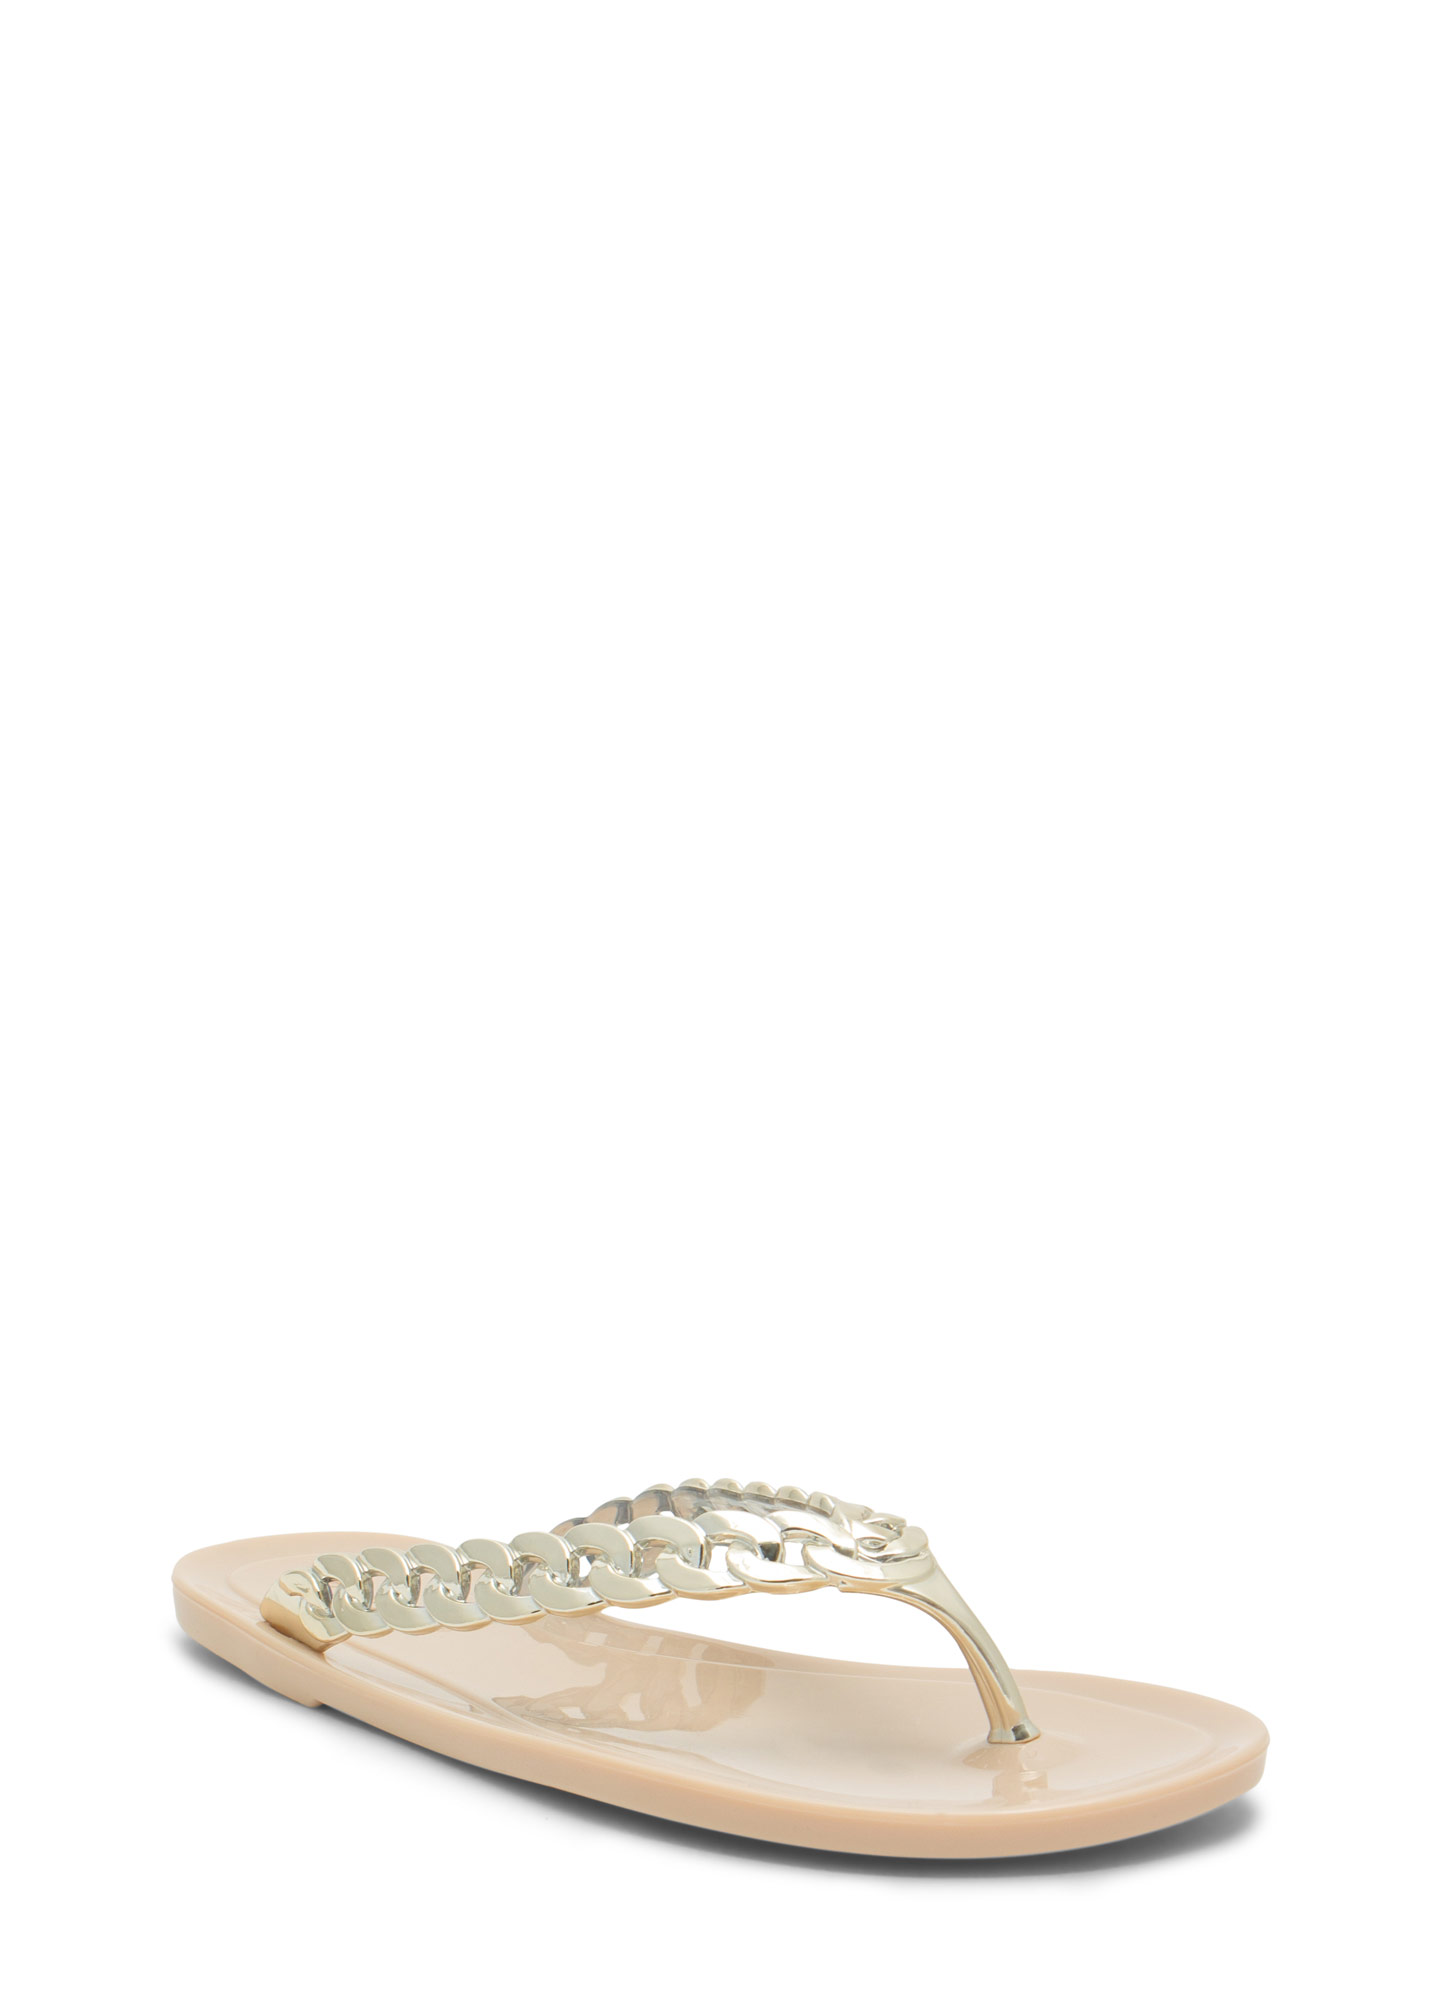 Missing Link Jelly Thong Sandals NUDE